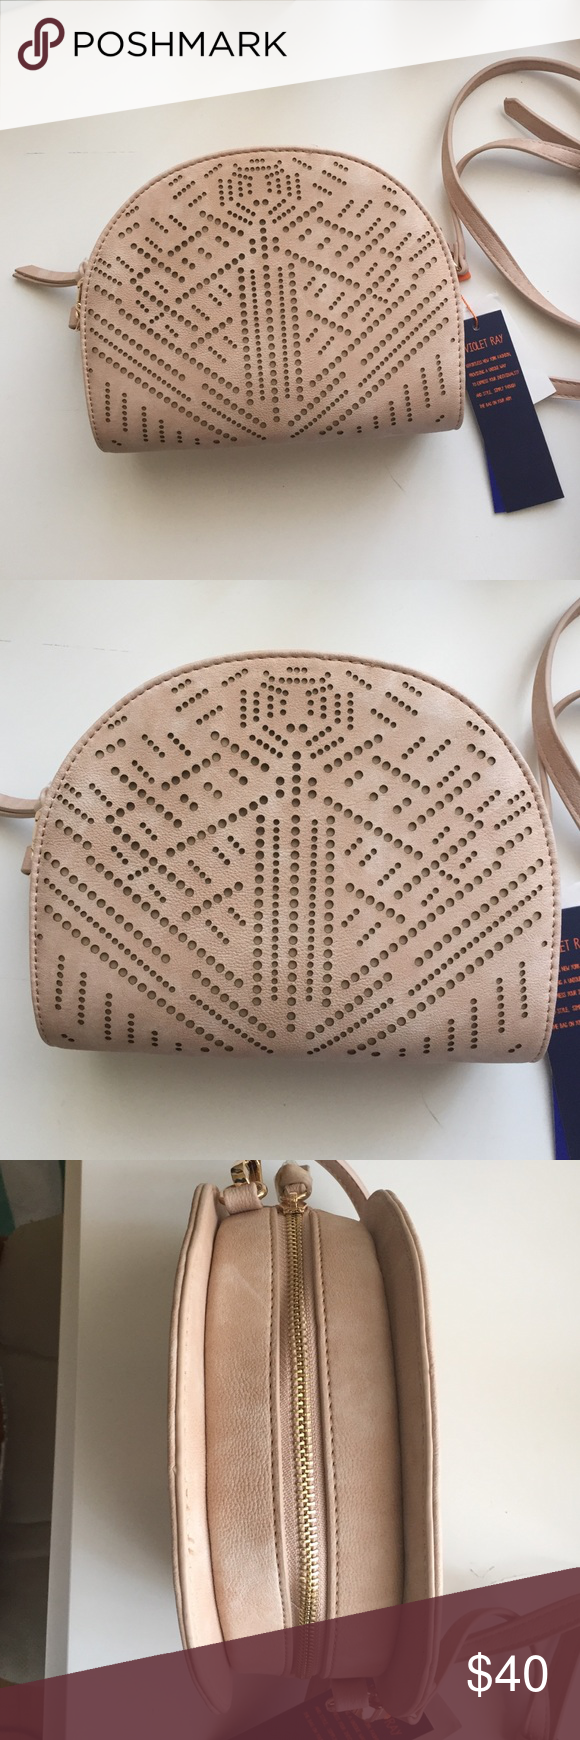 ❗️REDUCED❗️Blush Pink Satchel Has adjustable straps which also detach completely to make this a clutch if you'd like. Has an Aztec hole print design with 2 shades of pink a medium and light color to produce this beautiful blush color. Small and light would fit all your necessities like wallet, phone, etc. Violet Ray Bags Crossbody Bags